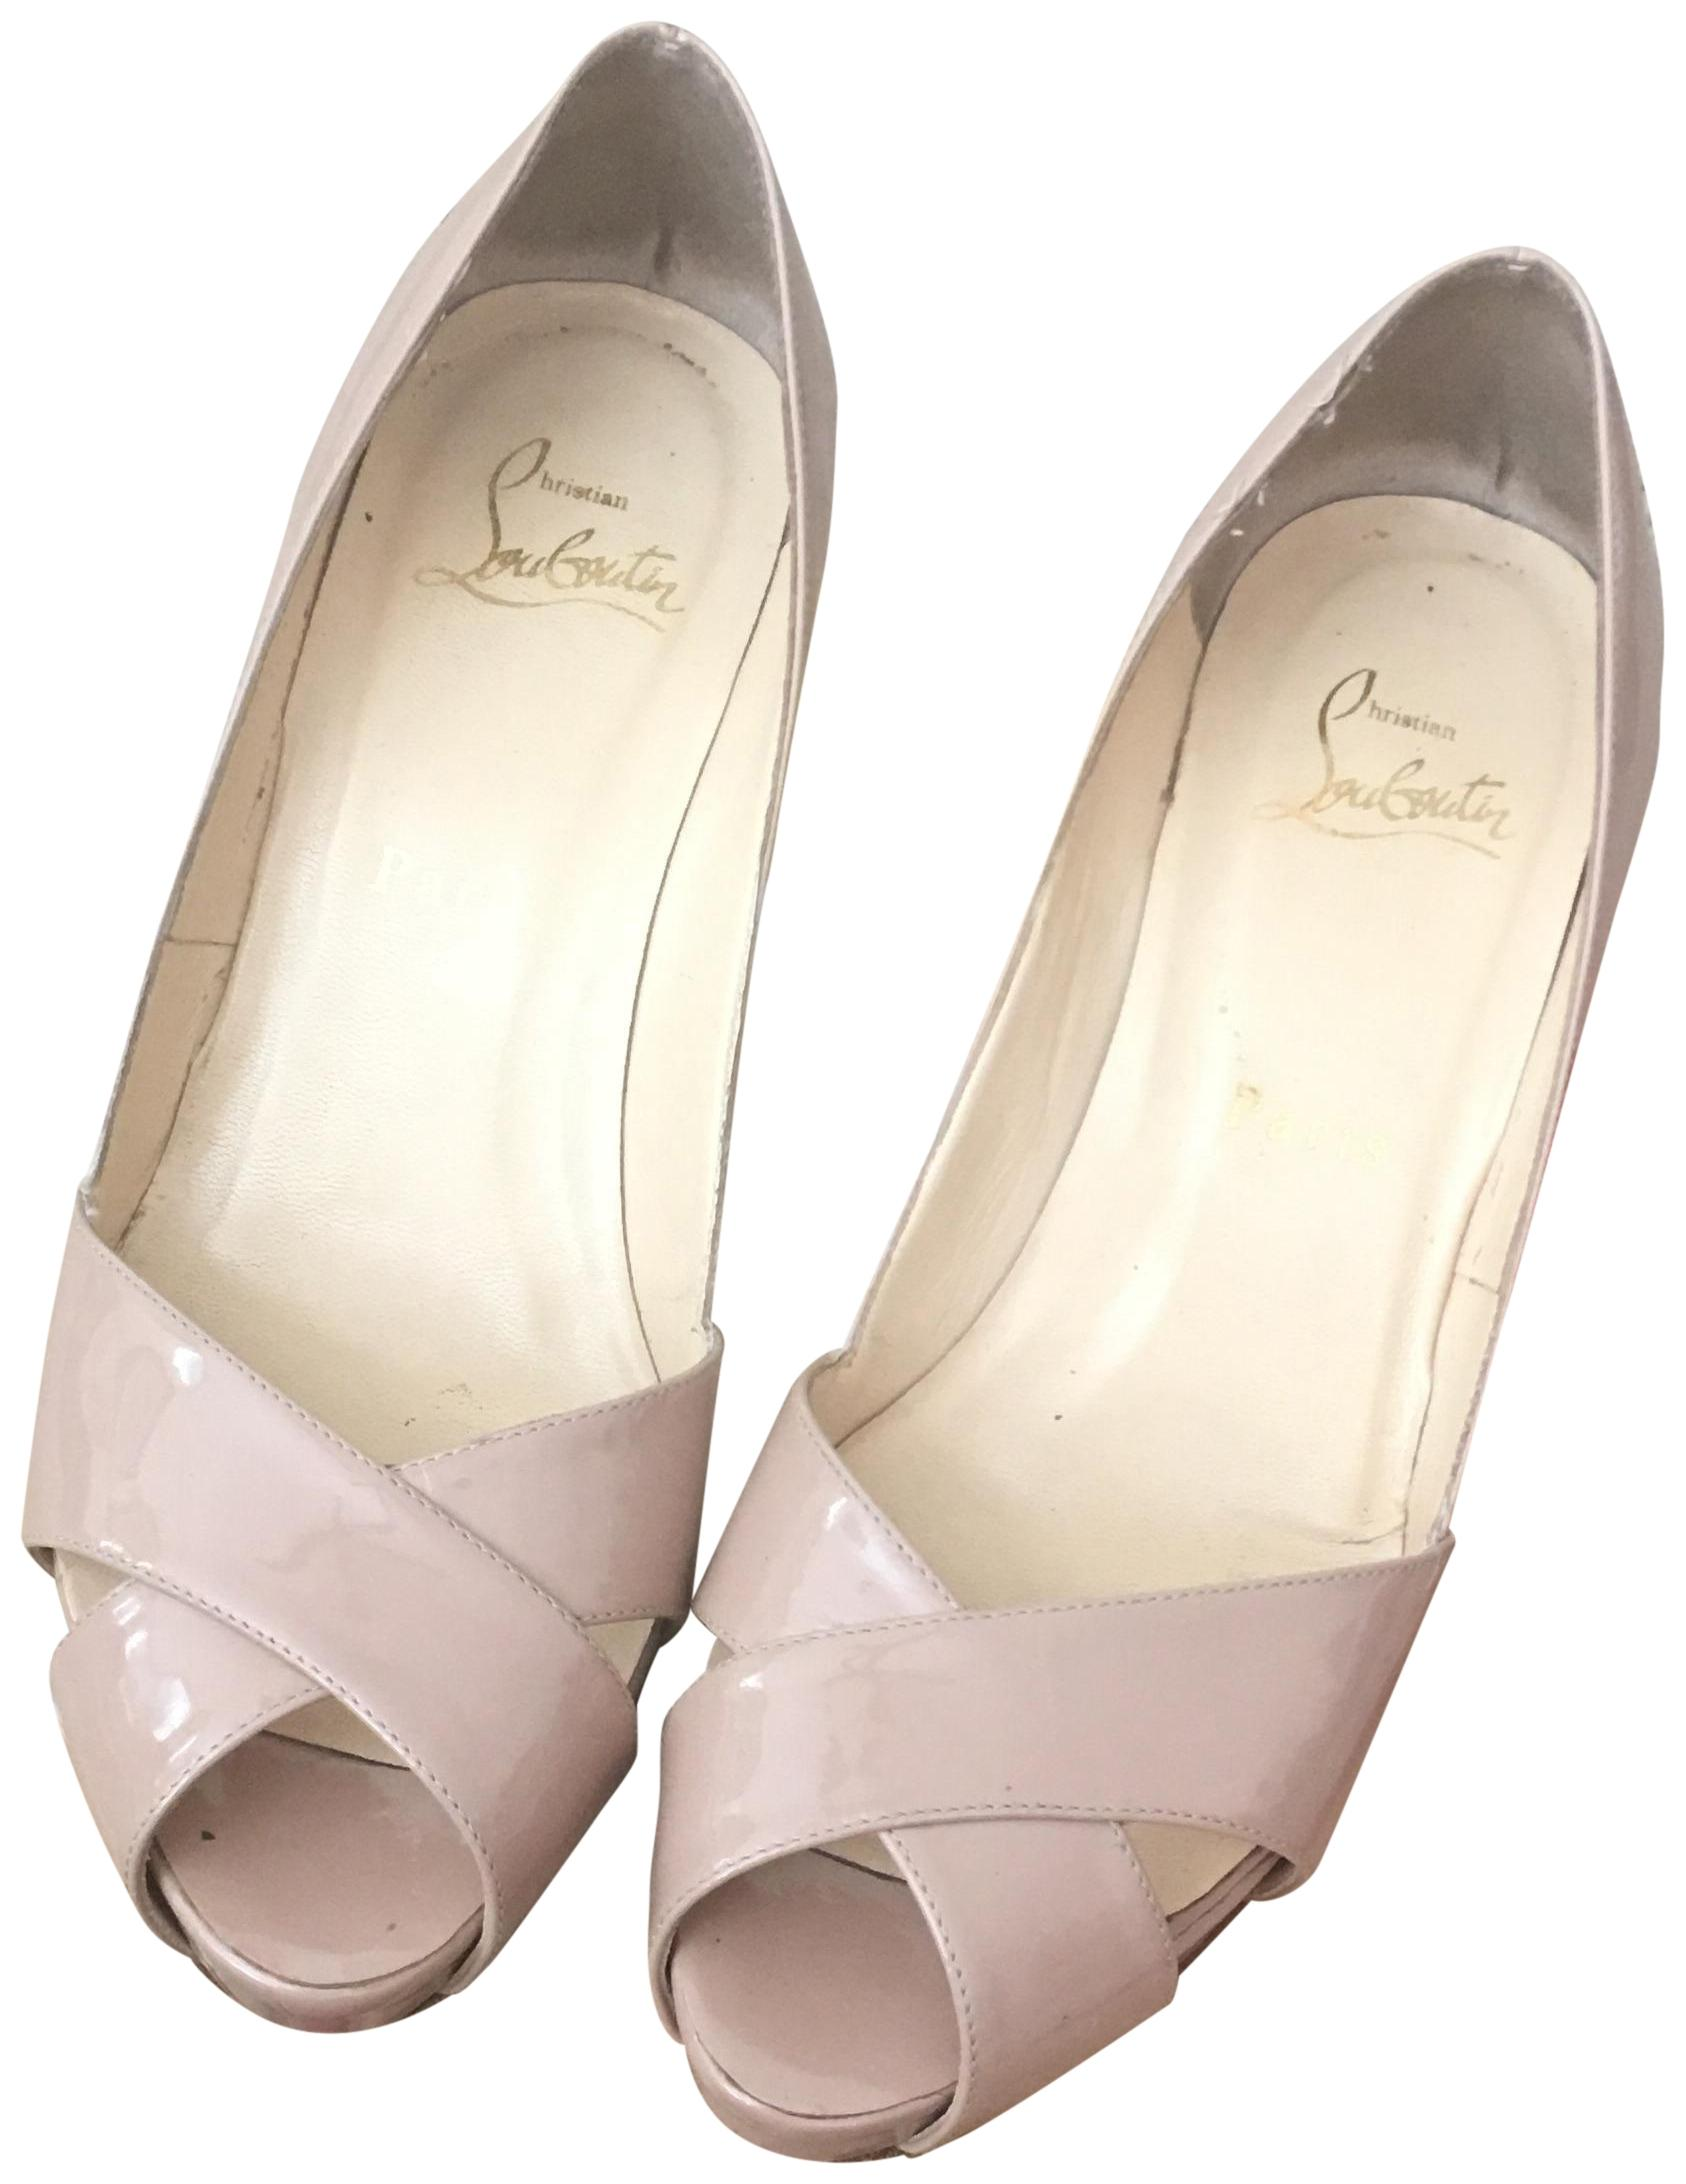 8a60d710b34 Christian Louboutin Louboutin Louboutin Patent Nude Shelly Leather Sandals  Size EU 36 (Approx. US